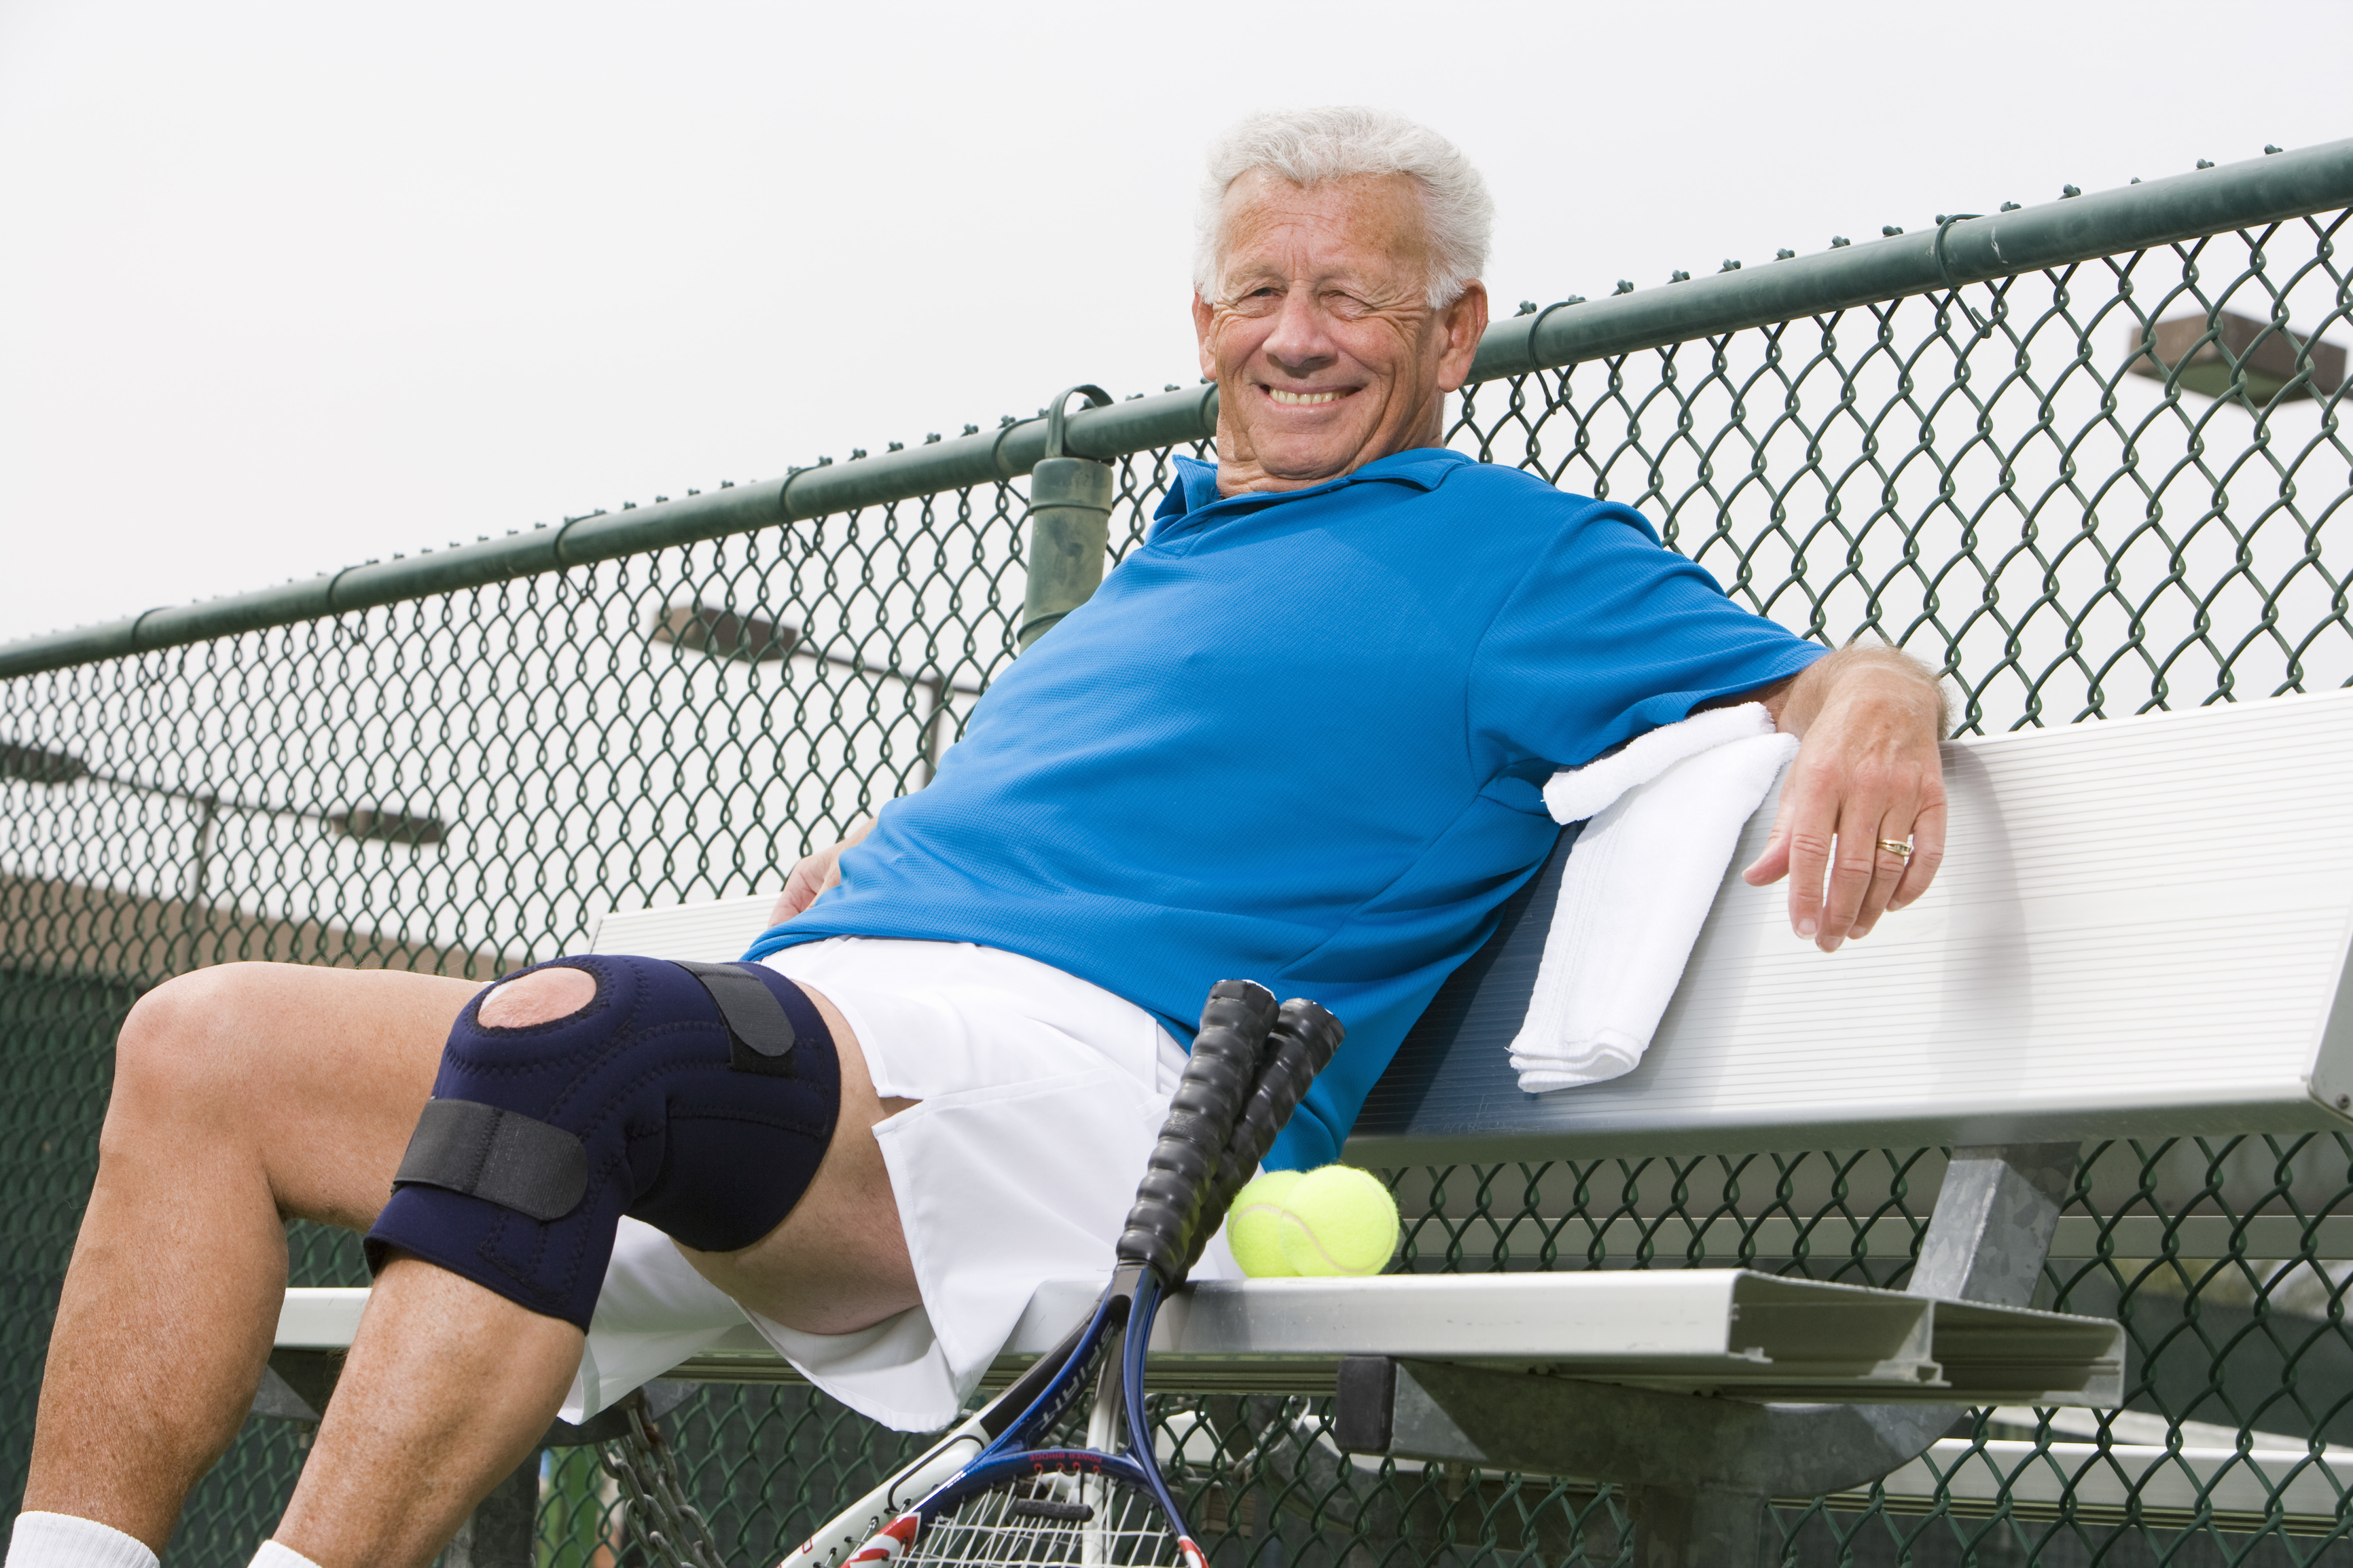 senior-tennis-player-relaxing-on-bench-2